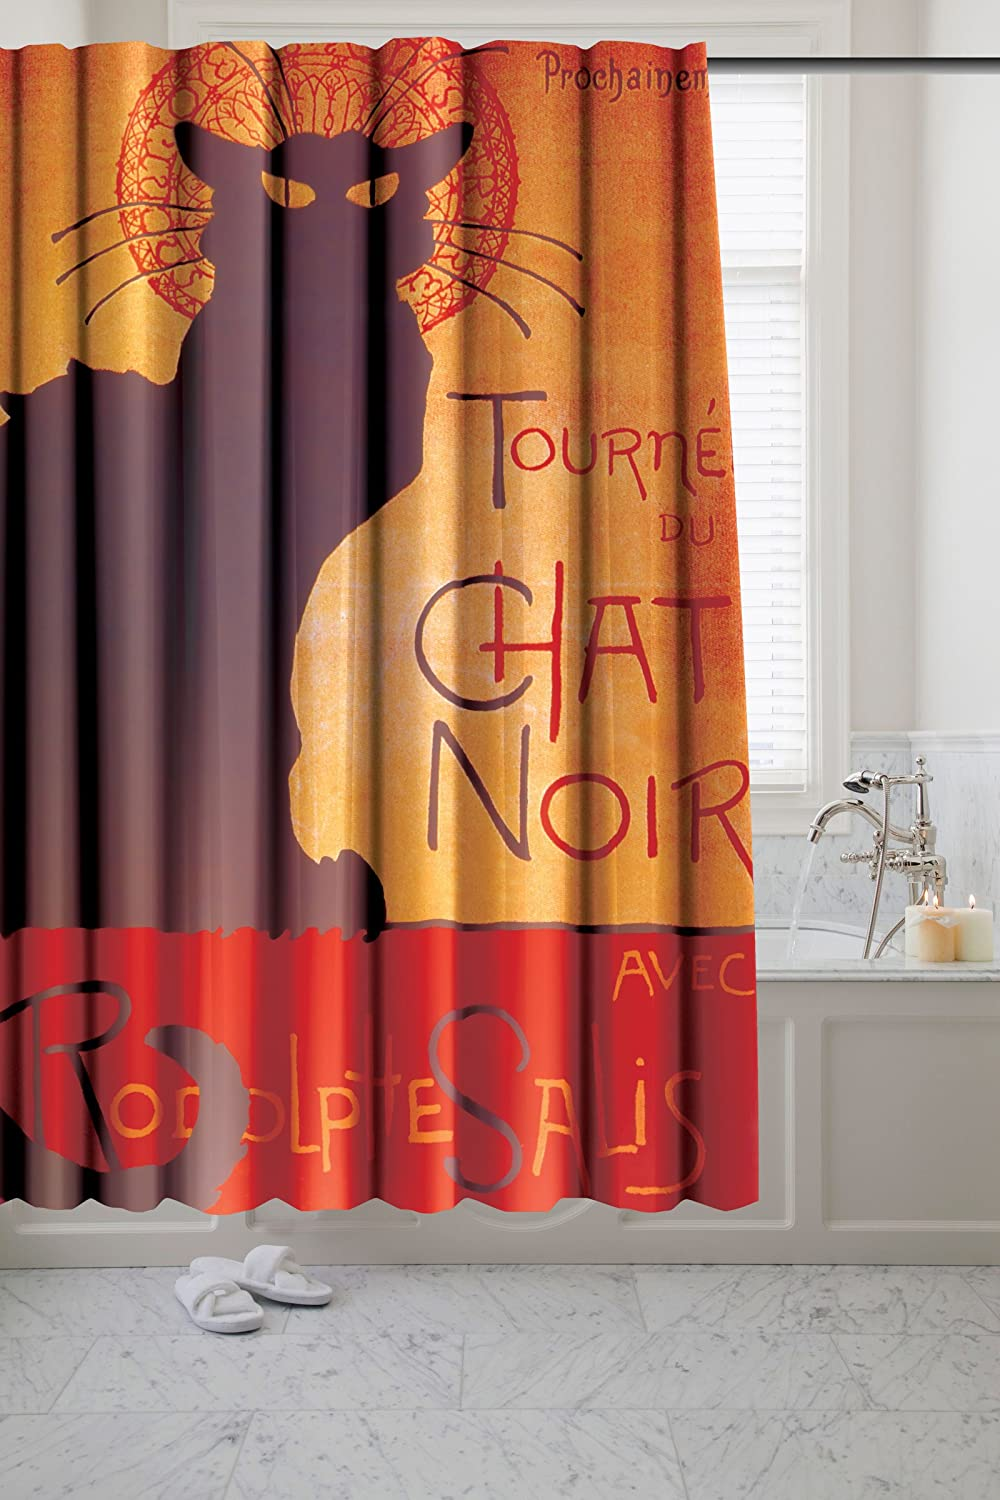 Chat Noir – Black Cat Fabric Novelty Shower Curtain – Museum Collection by artist Theophile Steinlen